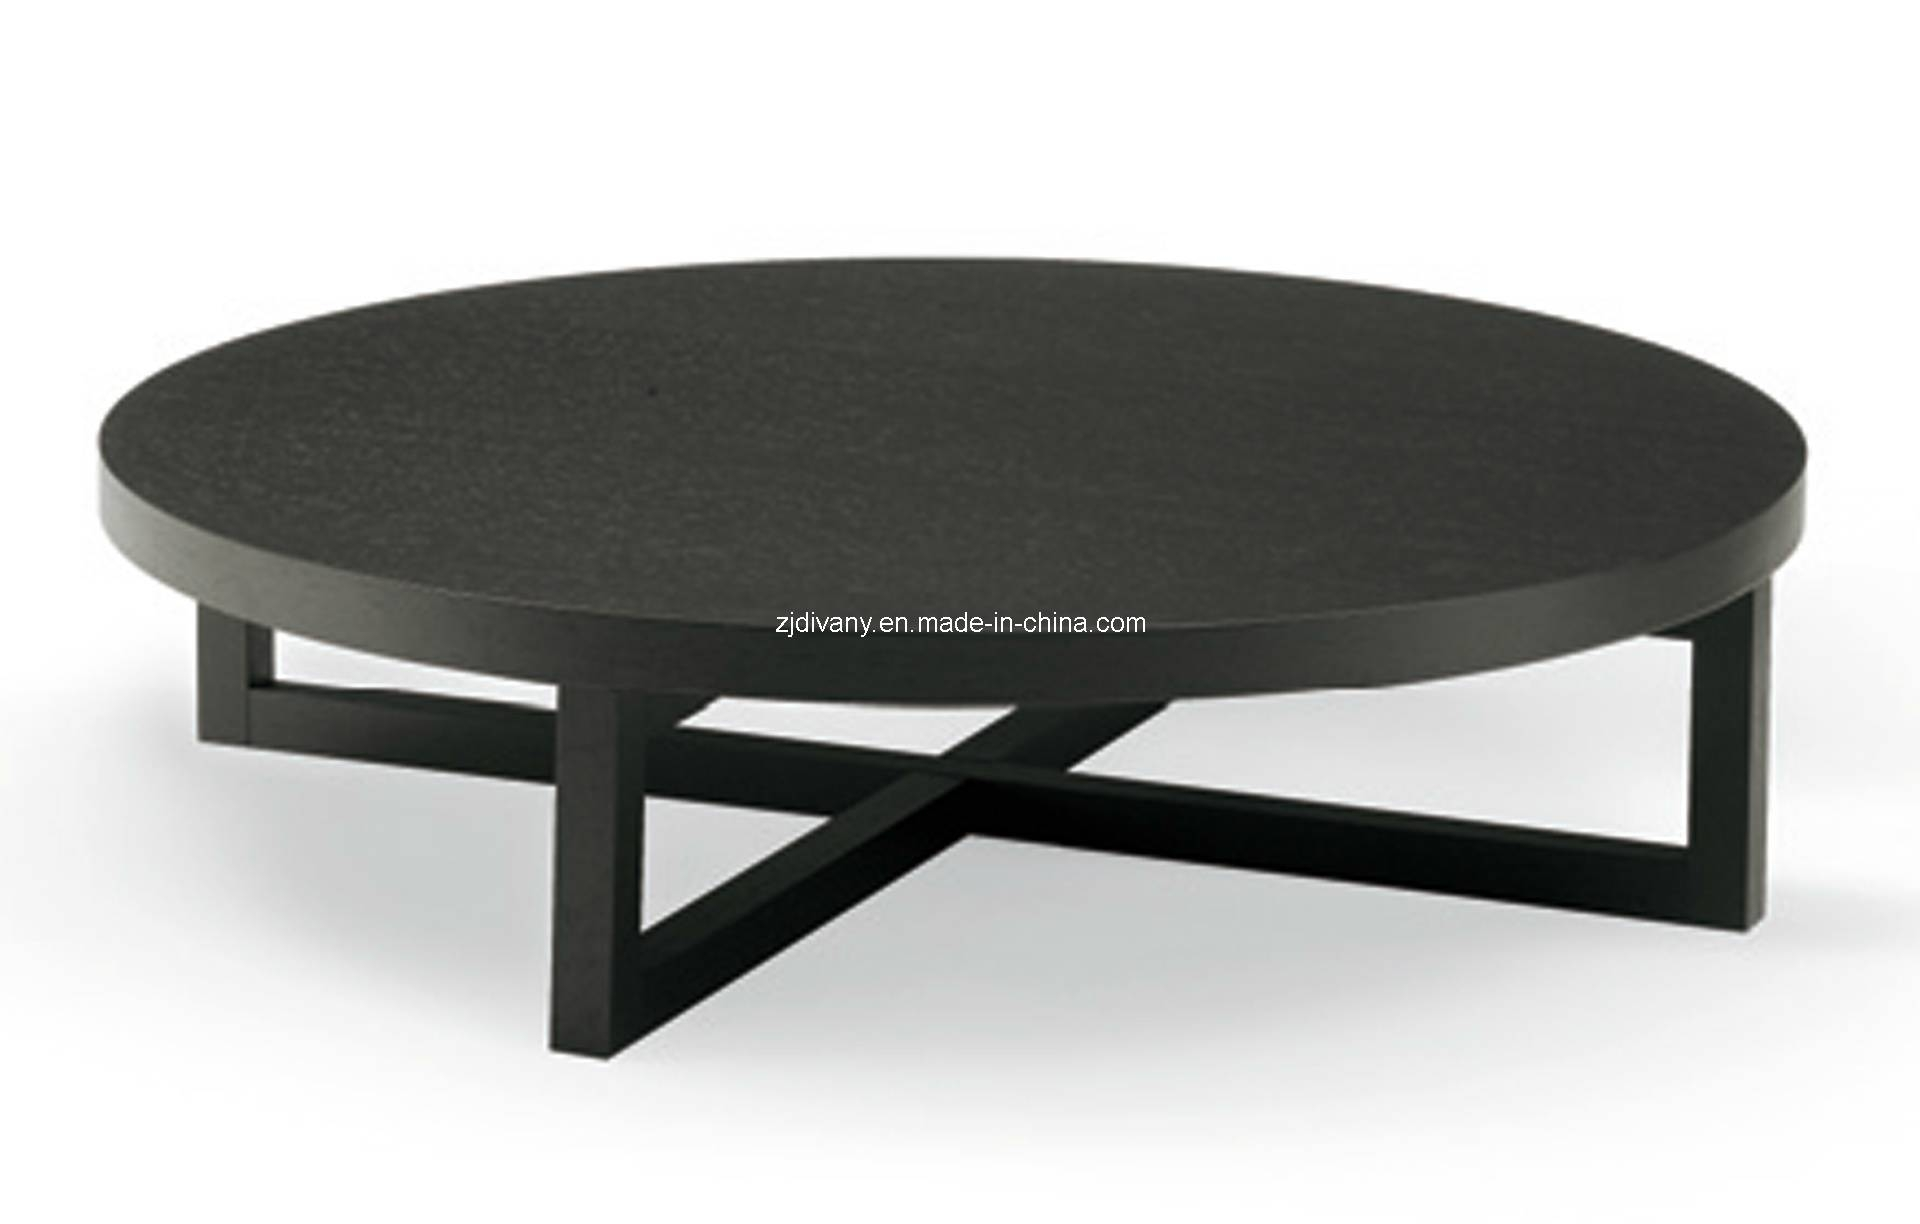 Low Round Coffee Table Uk | Coffee Tables Decoration Throughout Large Low Wooden Coffee Tables (View 22 of 30)